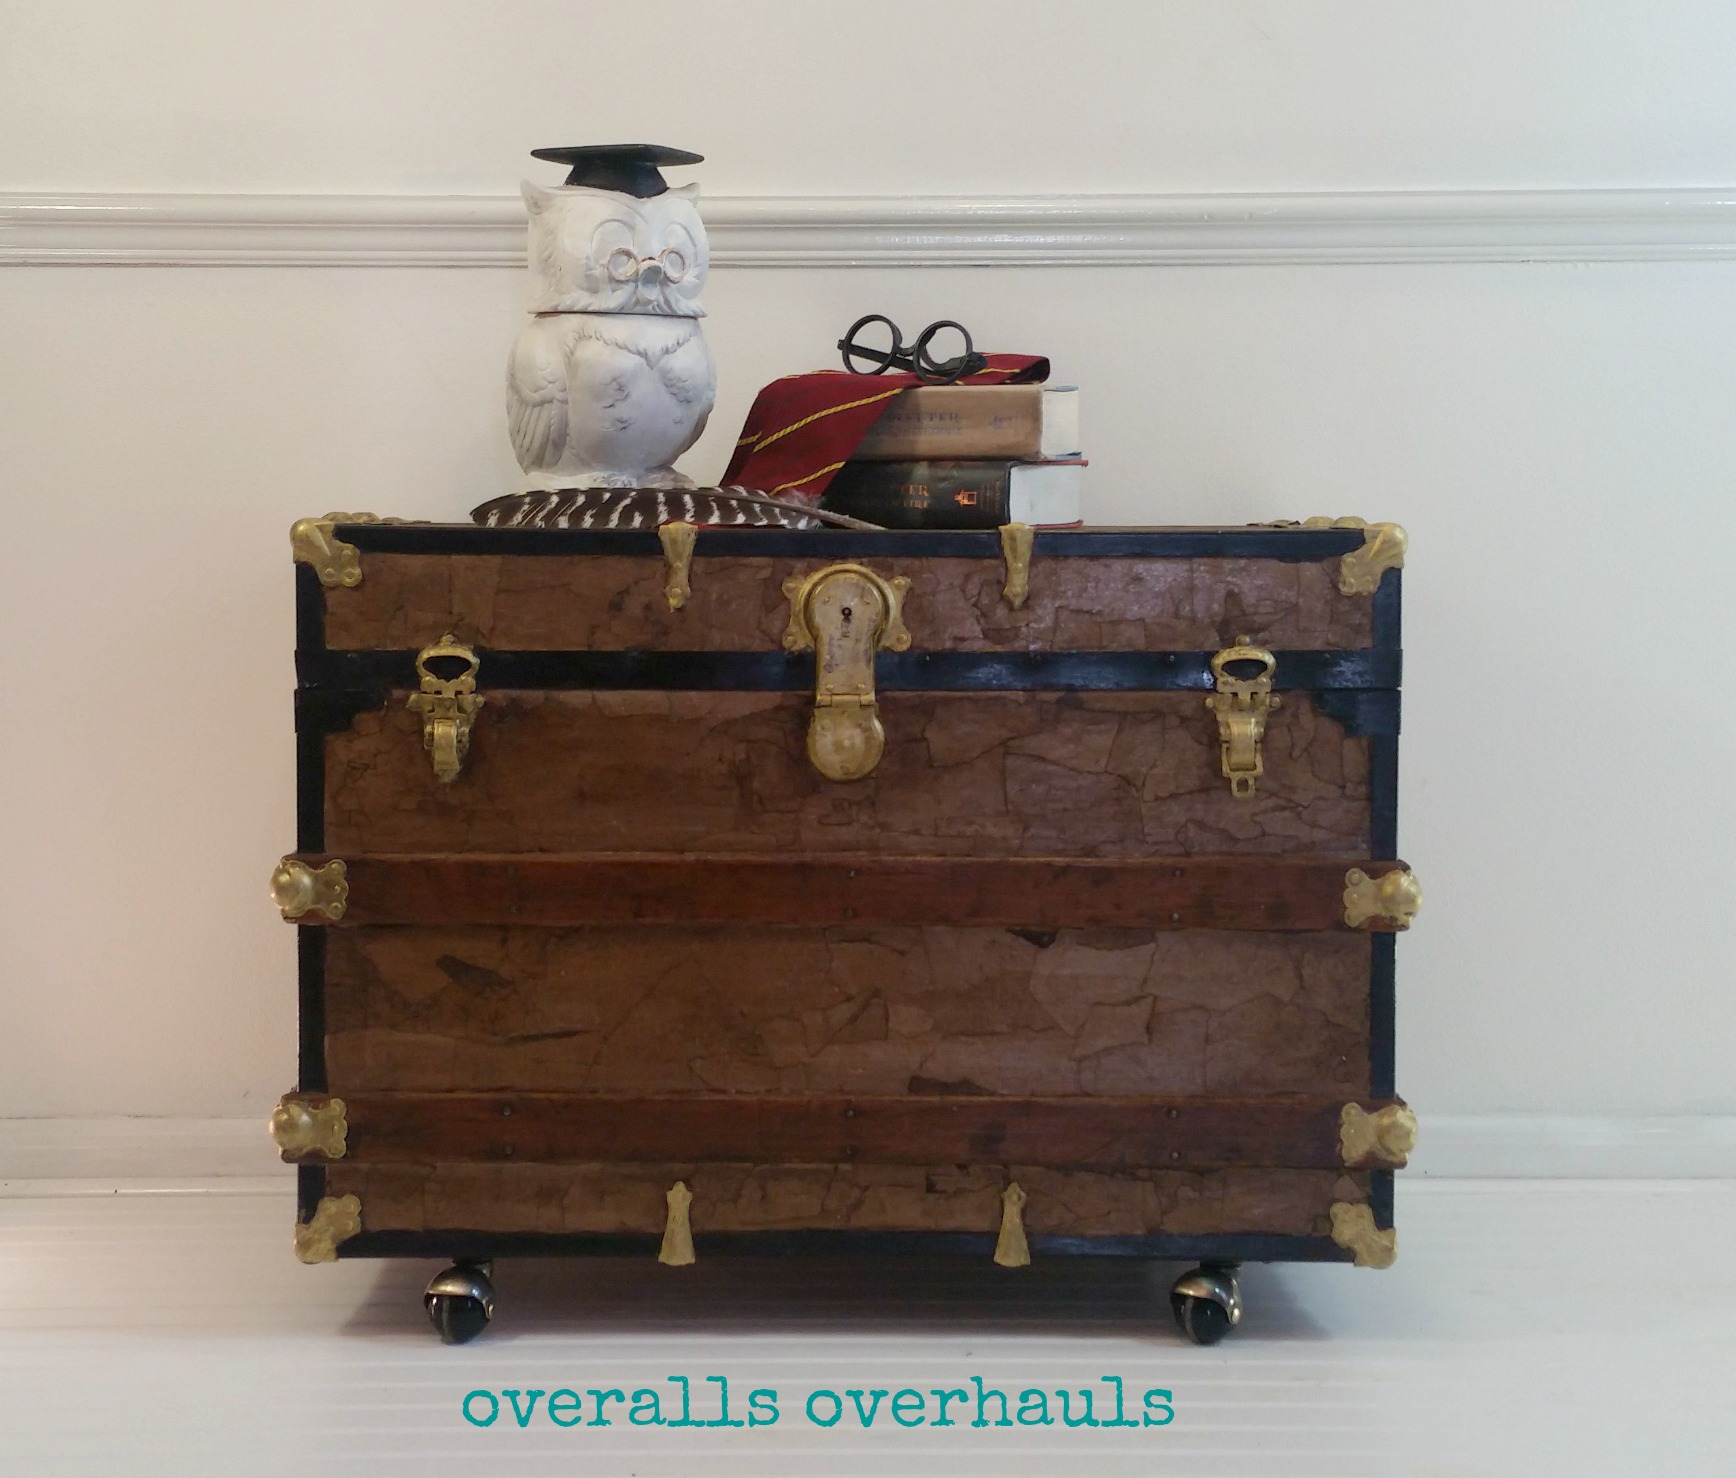 This is the finished product. Replaced the old really rusty built-in wheels with these casters. Refinished bits of wood, hardware and metal and adding a faux leather finish. I think it's adorable! Good for a coffee table - store games inside, end table, night stand or at the foot of a bed.